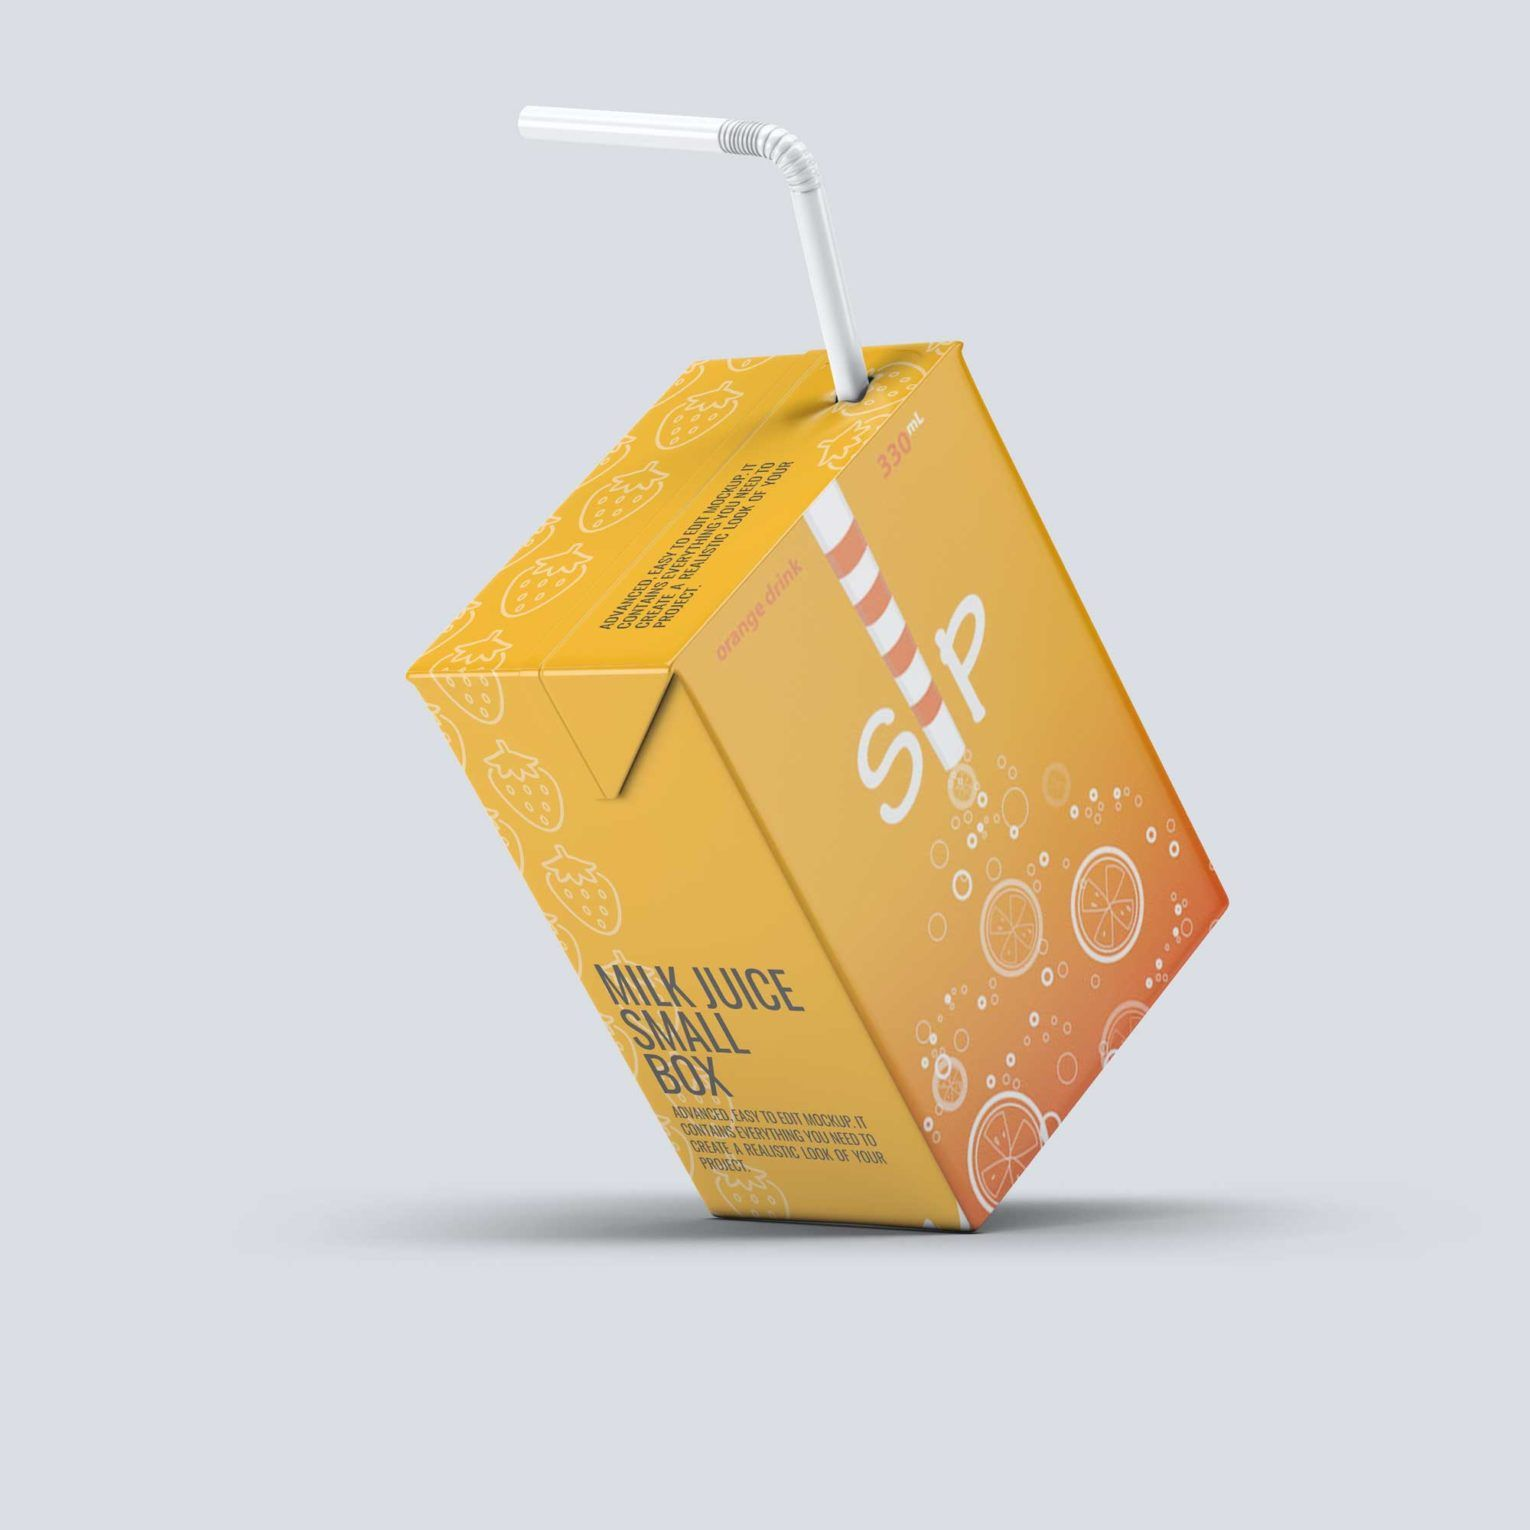 Download Juice Box Psd Mockup Download For Free Juice Box Psd Mockup Juice Boxes Juice Creative Packaging Design